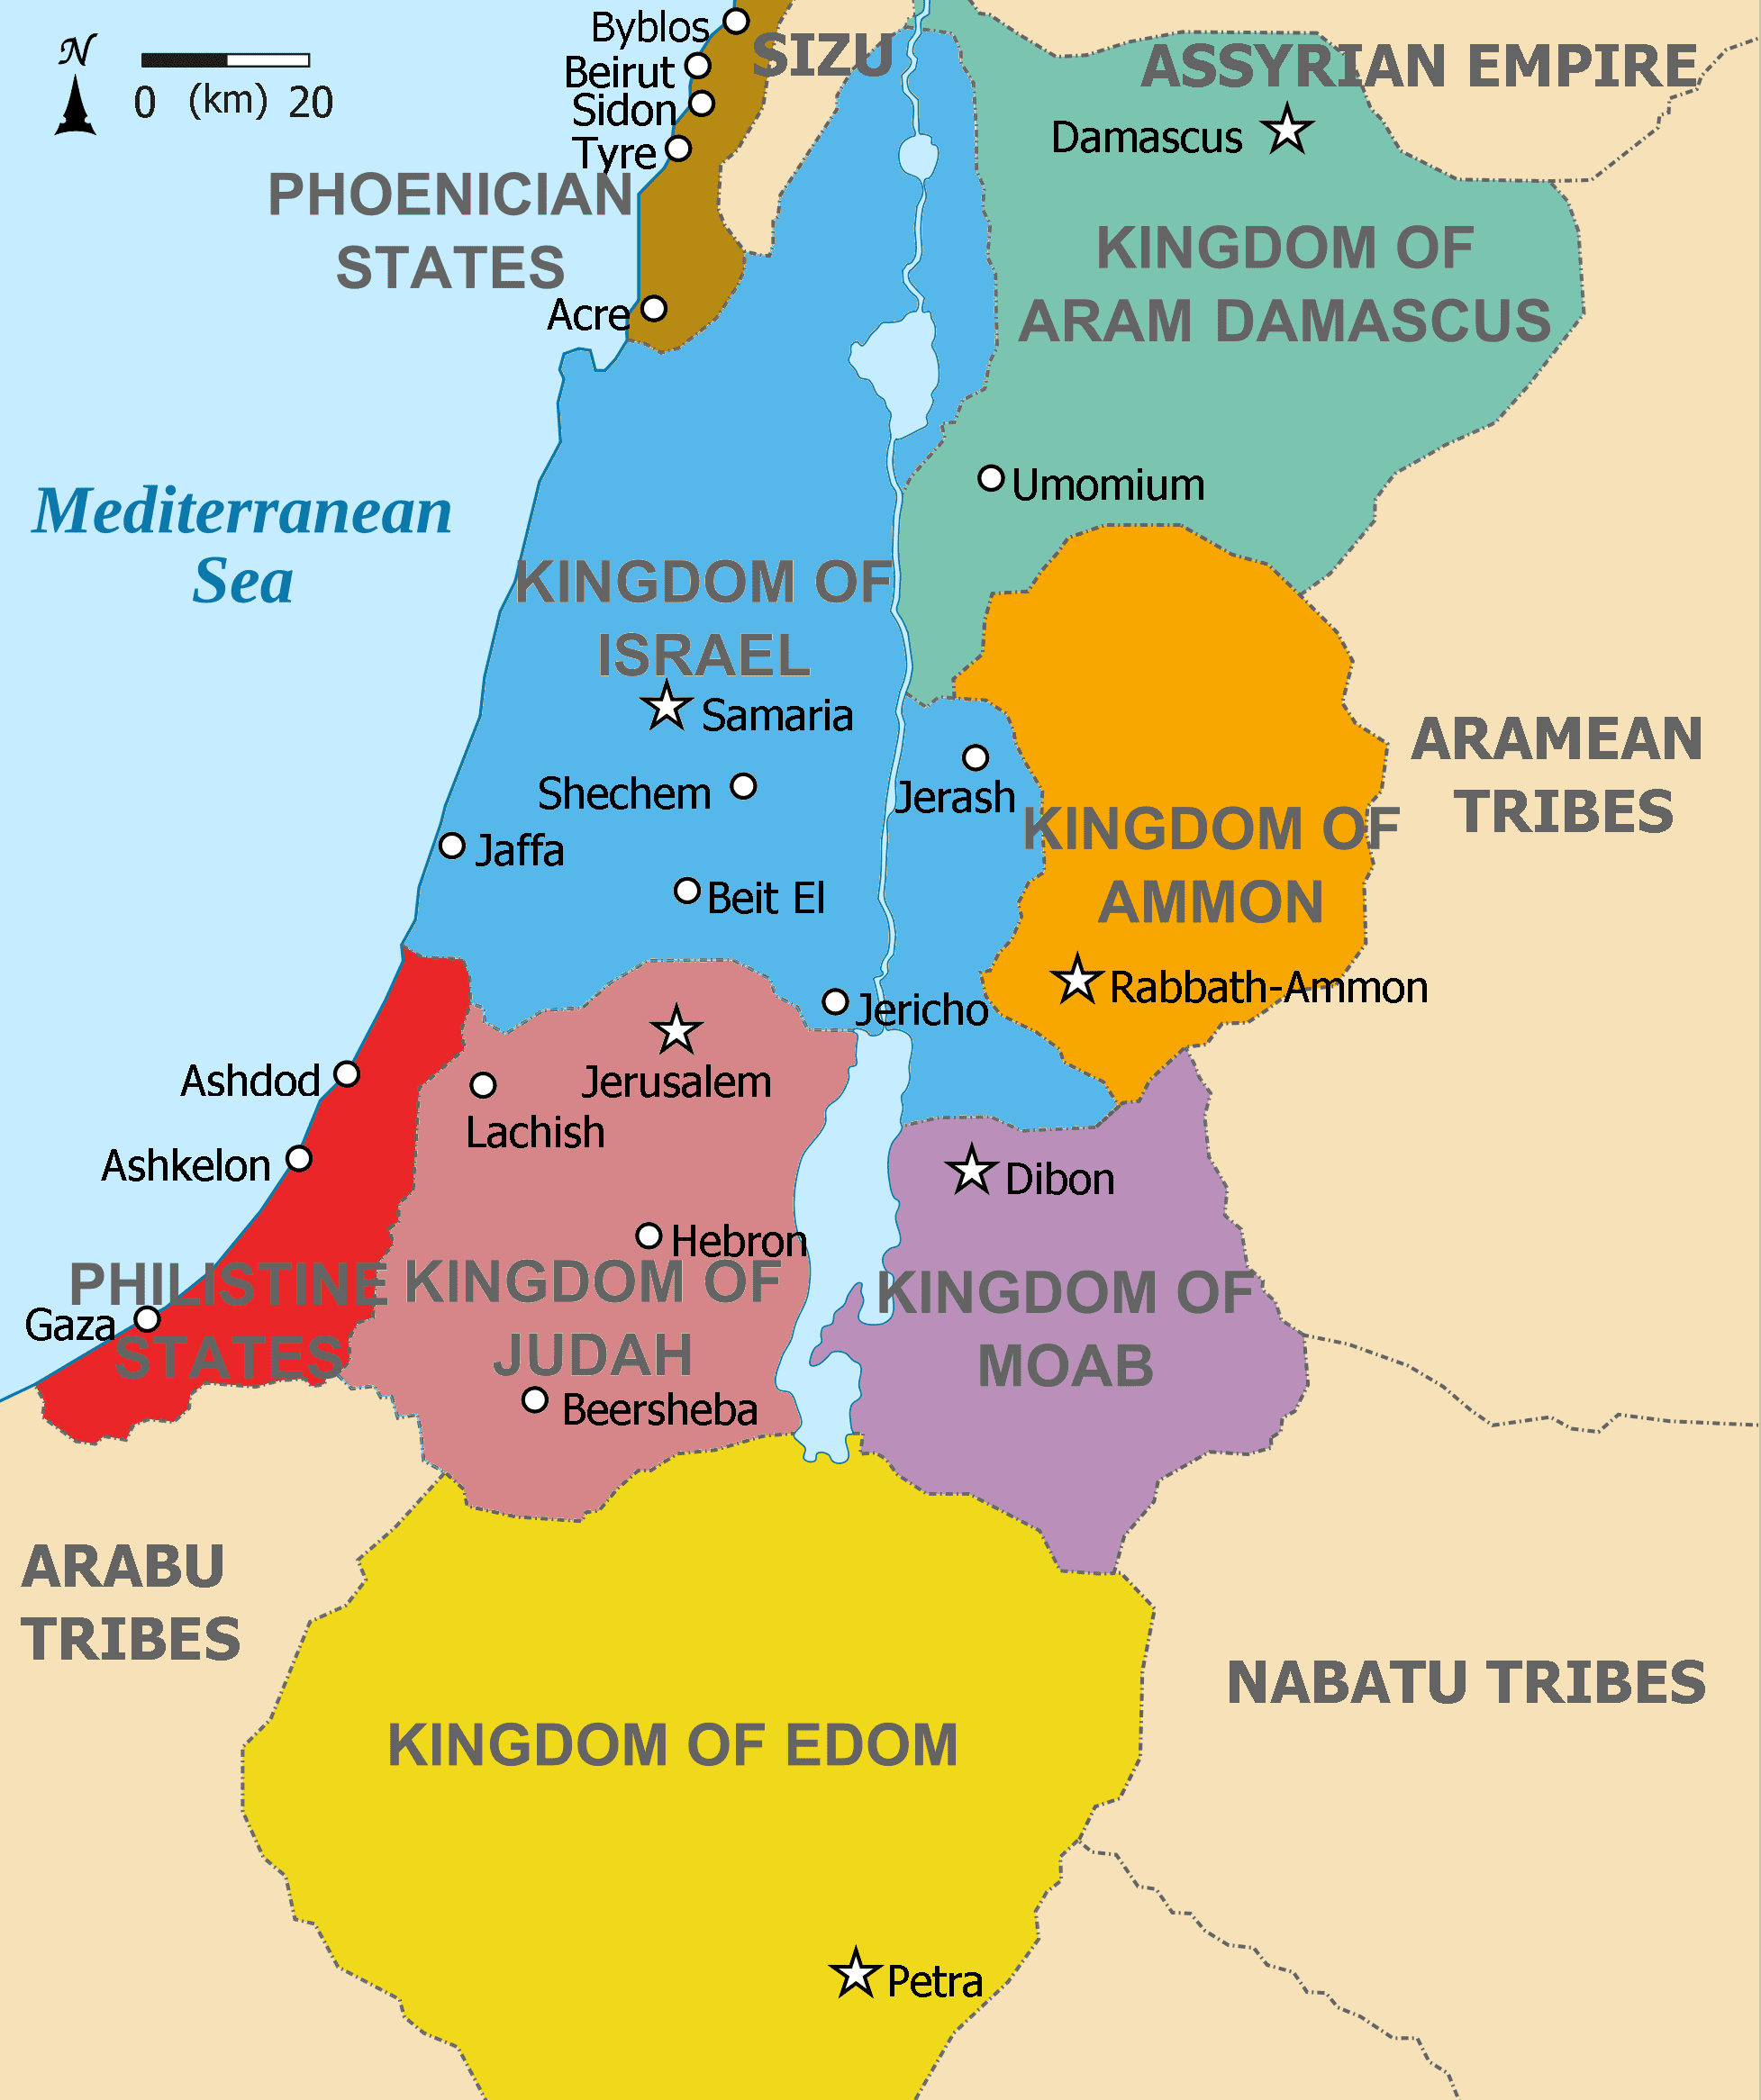 The Ancient Levant With Map on map of israel during jesus' time, current map of israel, map of jerusalem, map of judea, large map of israel, caesarea israel, map of israel and palestine, road map of israel, united kingdom monarchy of israel, map of middle east, map of jordan, map of holy land, photographs of israel, map of west bank barrier, map of israel joshua, map of biblical israel, map of greece, modern day map israel, map of israel today, map of promised land,